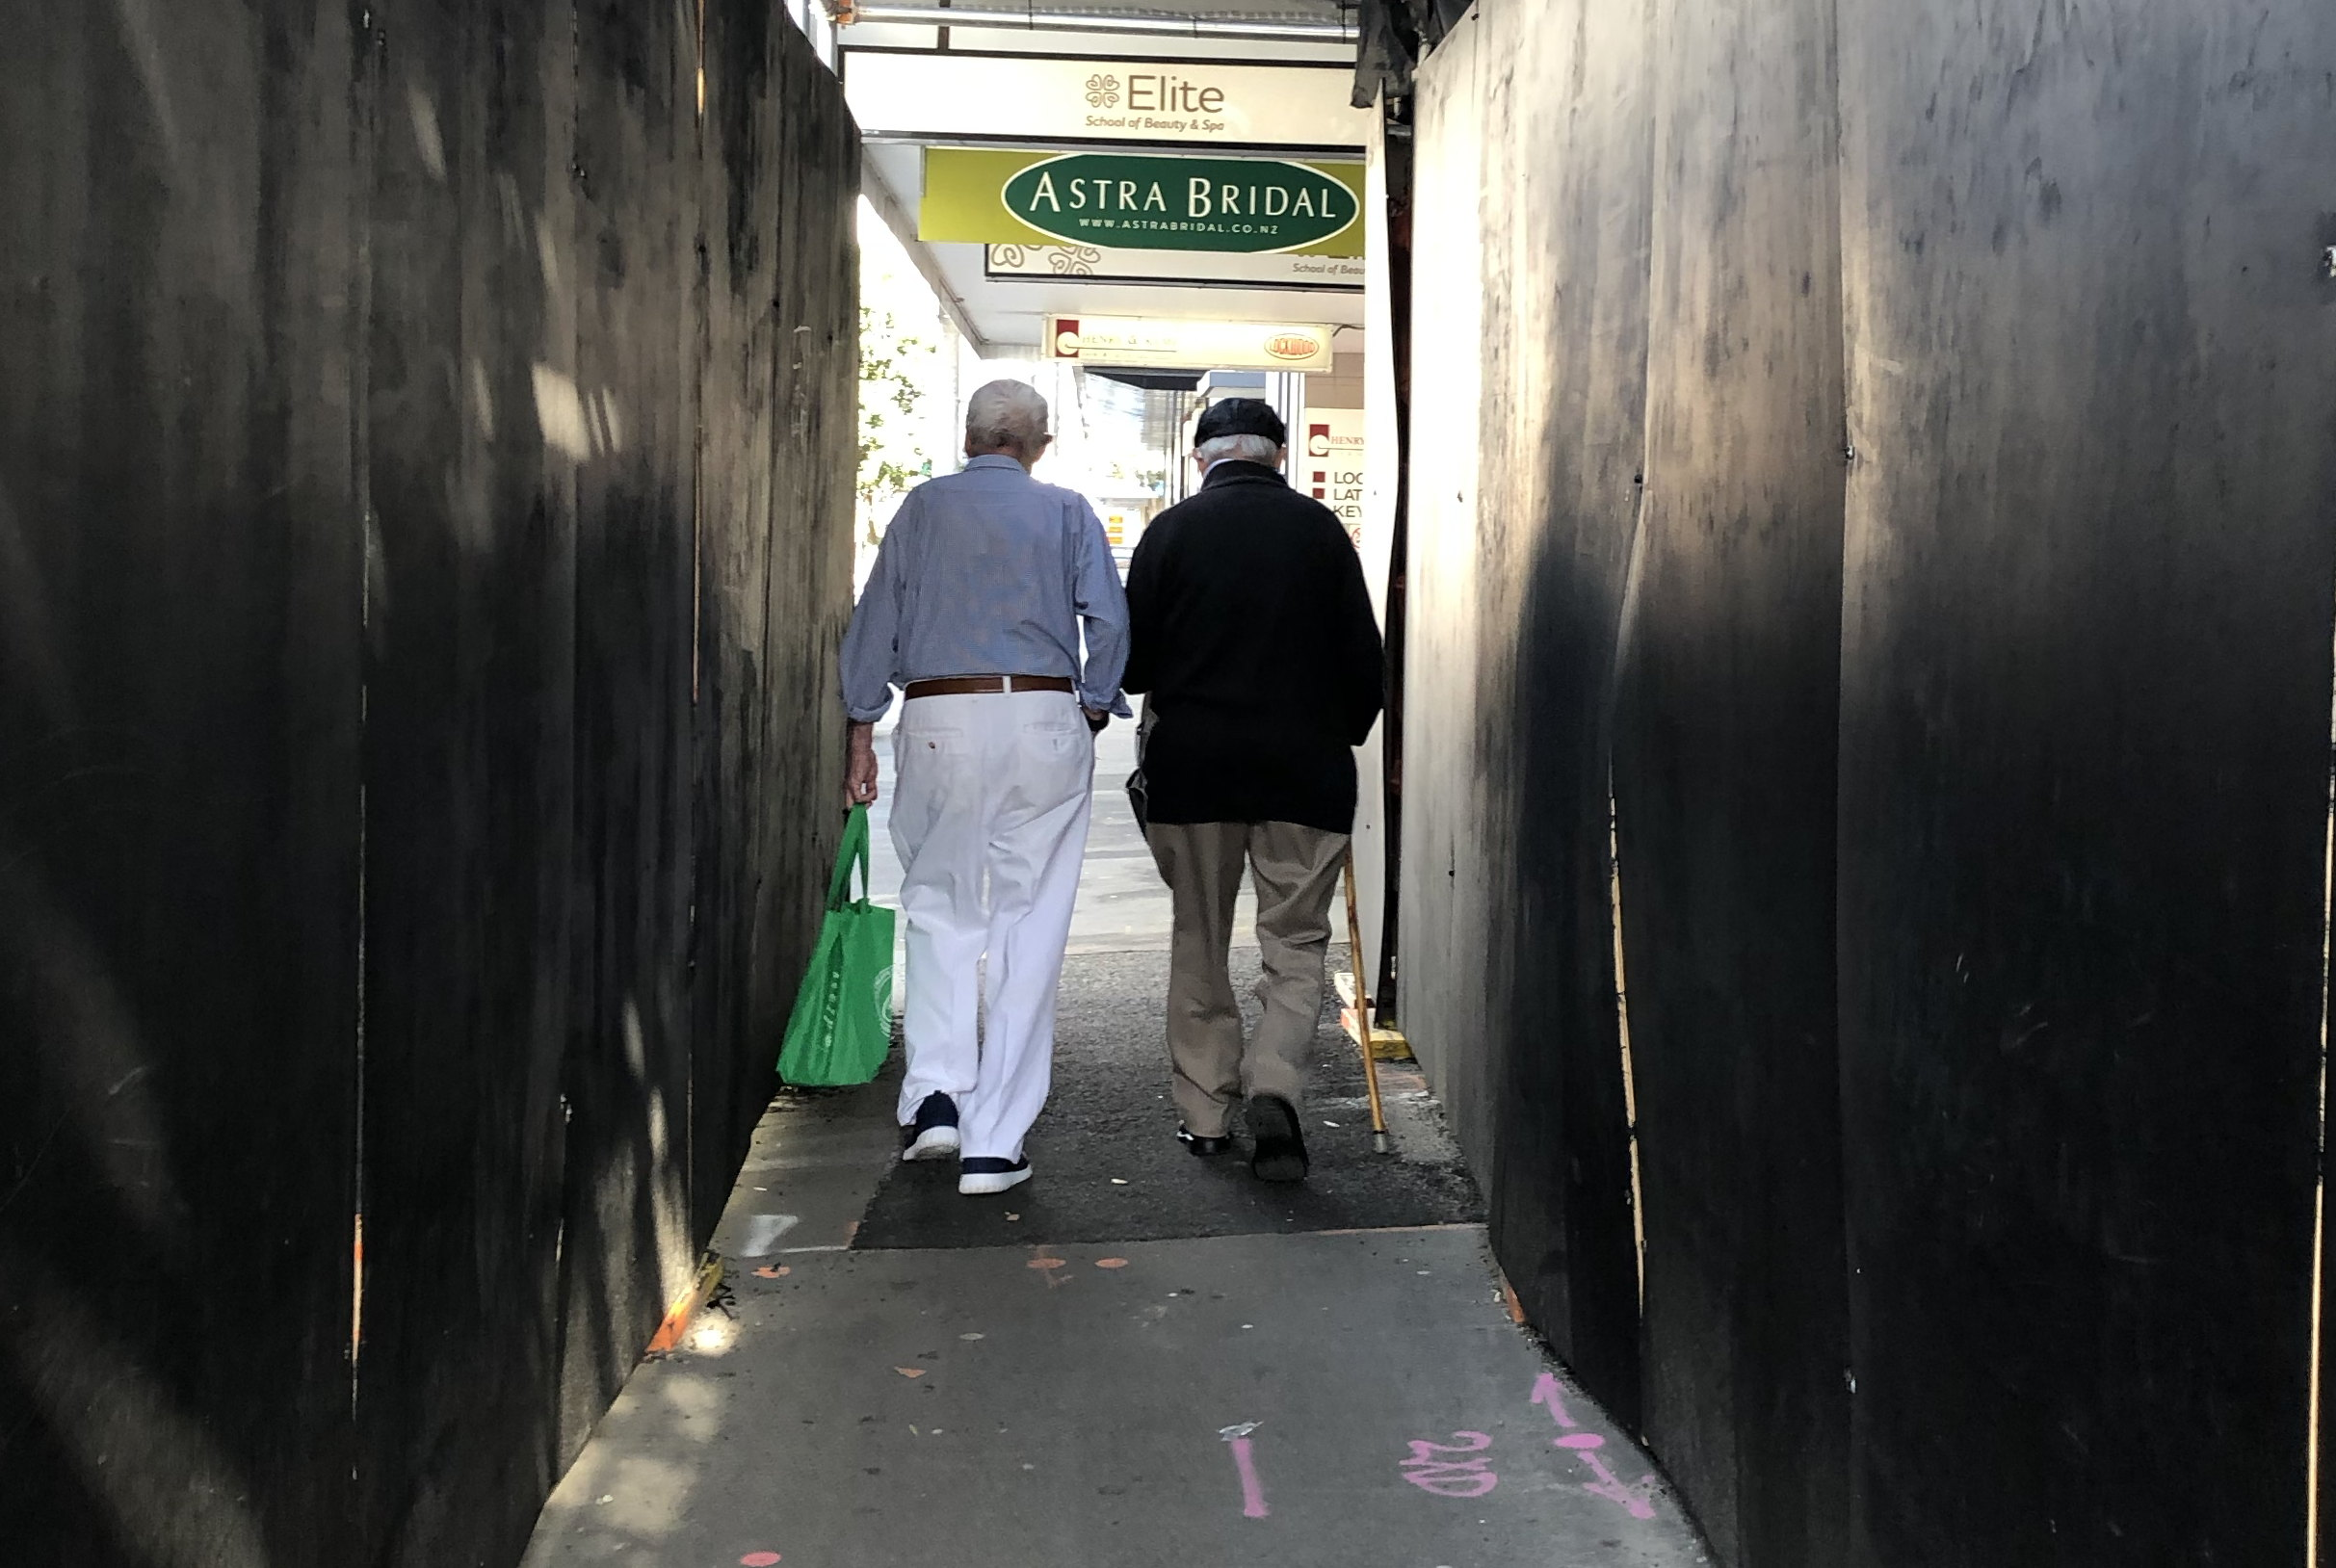 two older men walking together with shopping bags